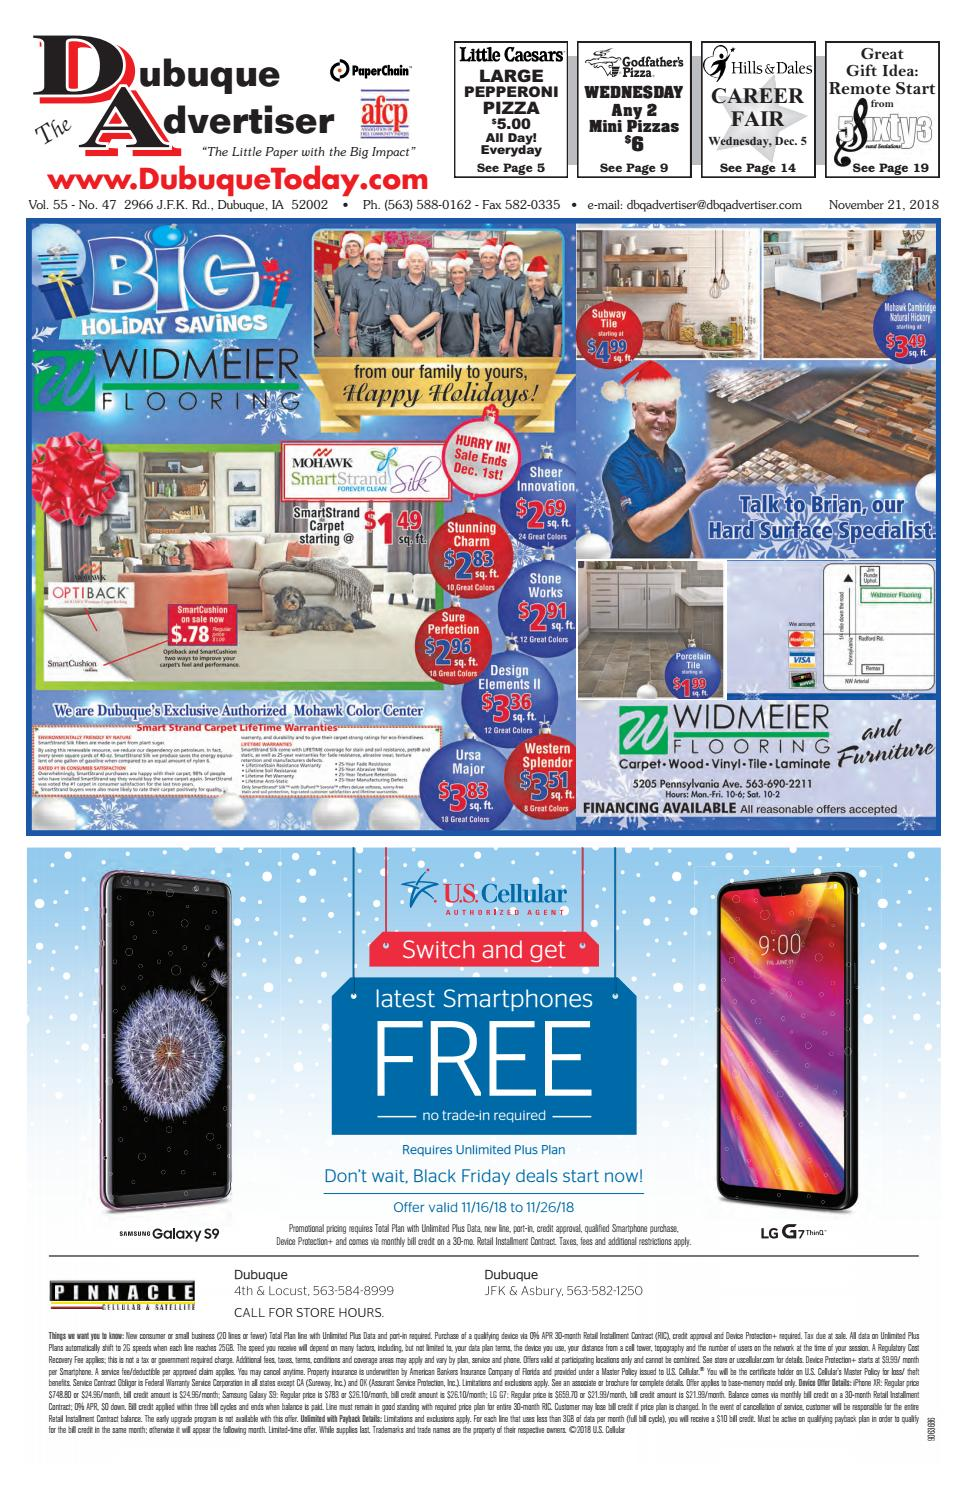 145e9cb2d5 The Dubuque Advertiser November 21, 2018 by The Dubuque Advertiser - issuu